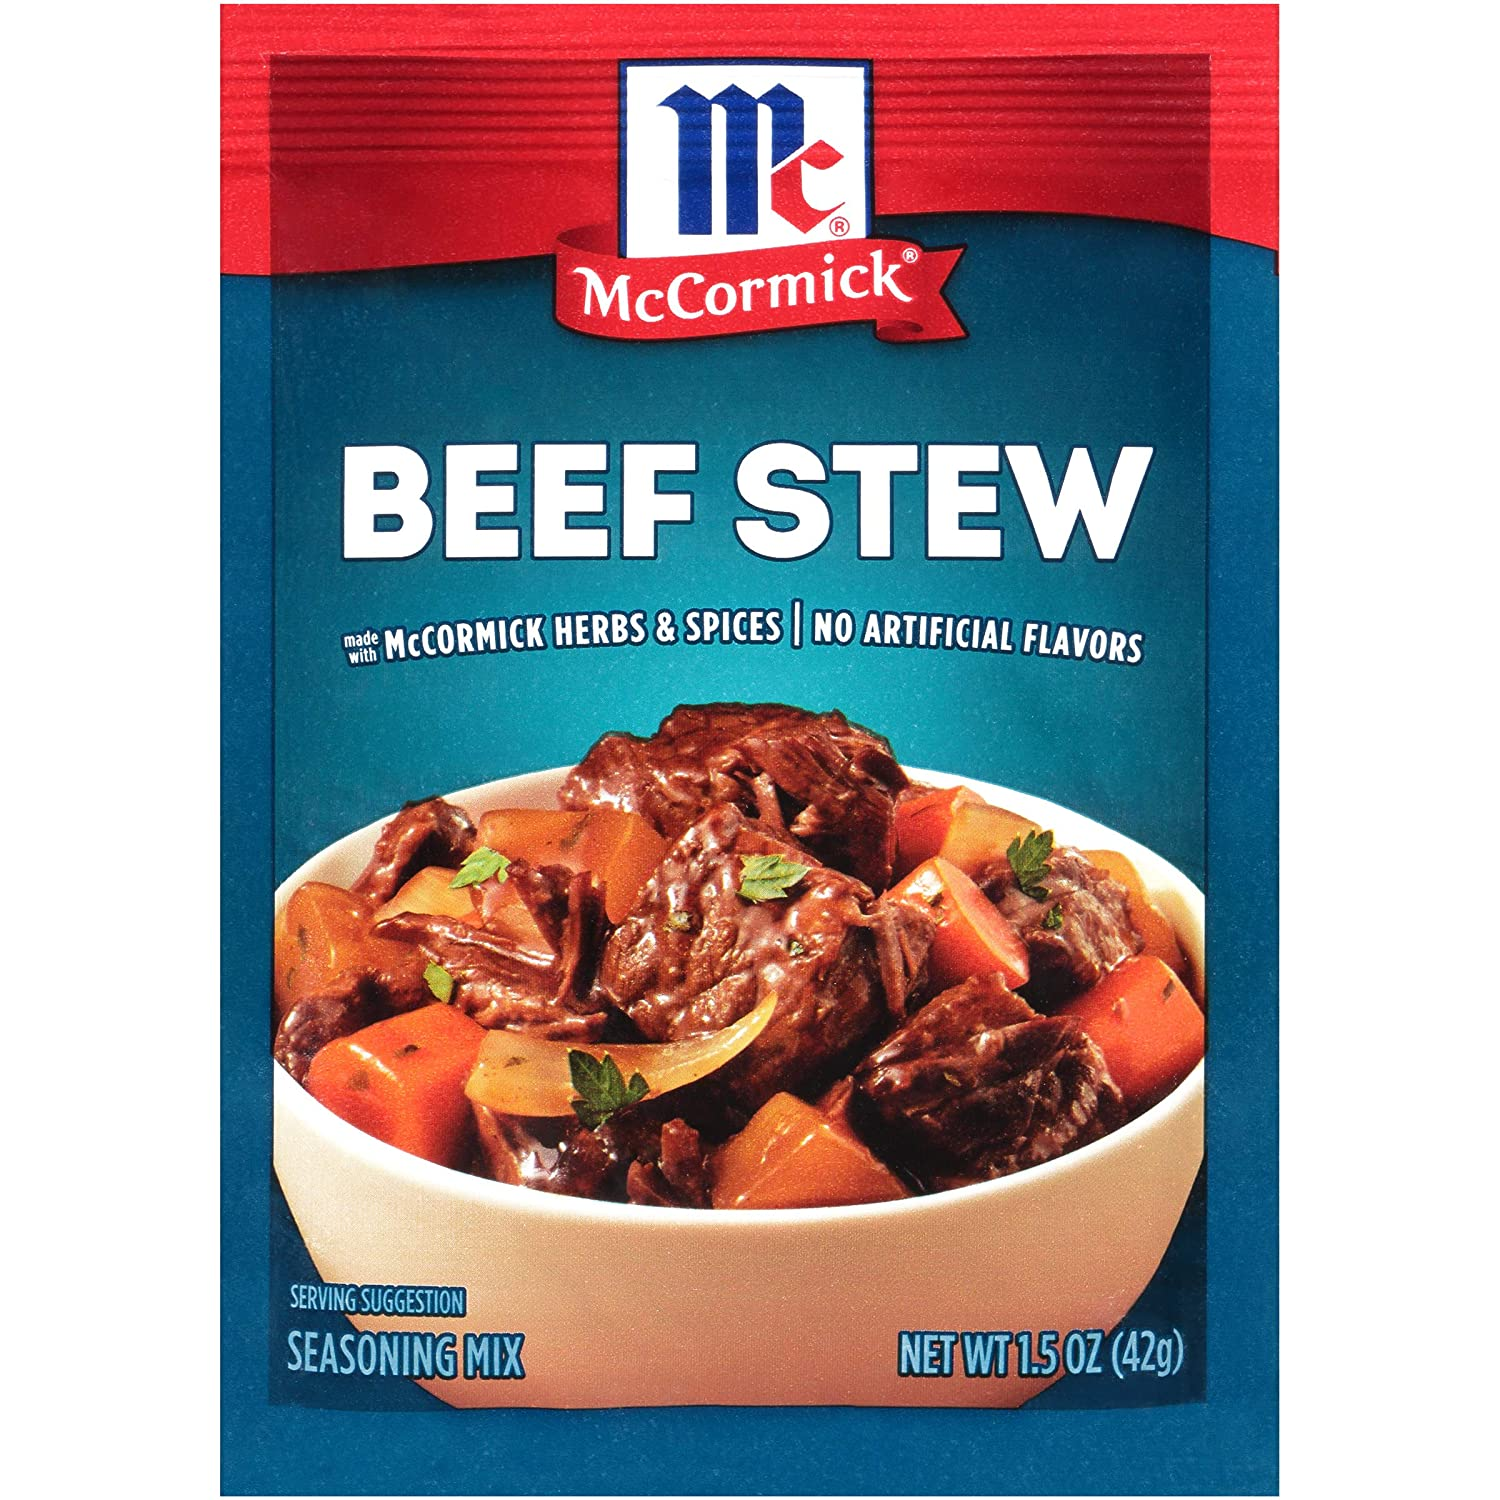 McCormick Classic Beef Stew Seasoning Mix Packet, 1.5 oz